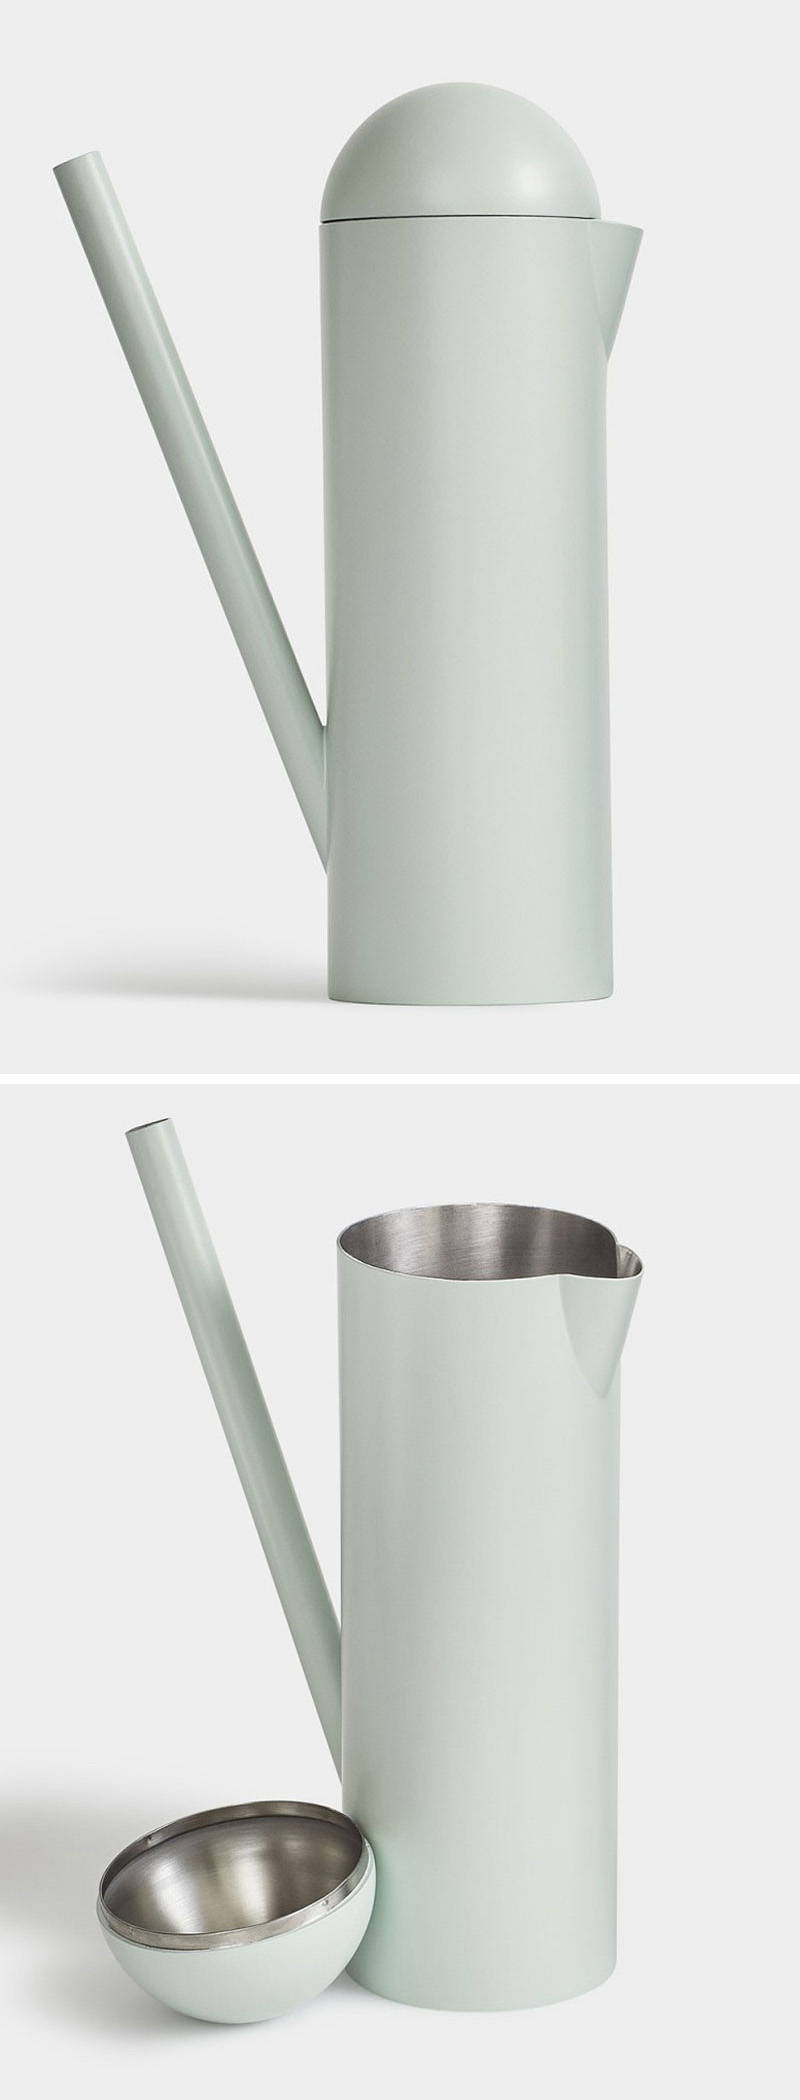 This modern mint colored watering can can also be used as a drink pitcher simply by removing the lid and using the long spout as a handle.